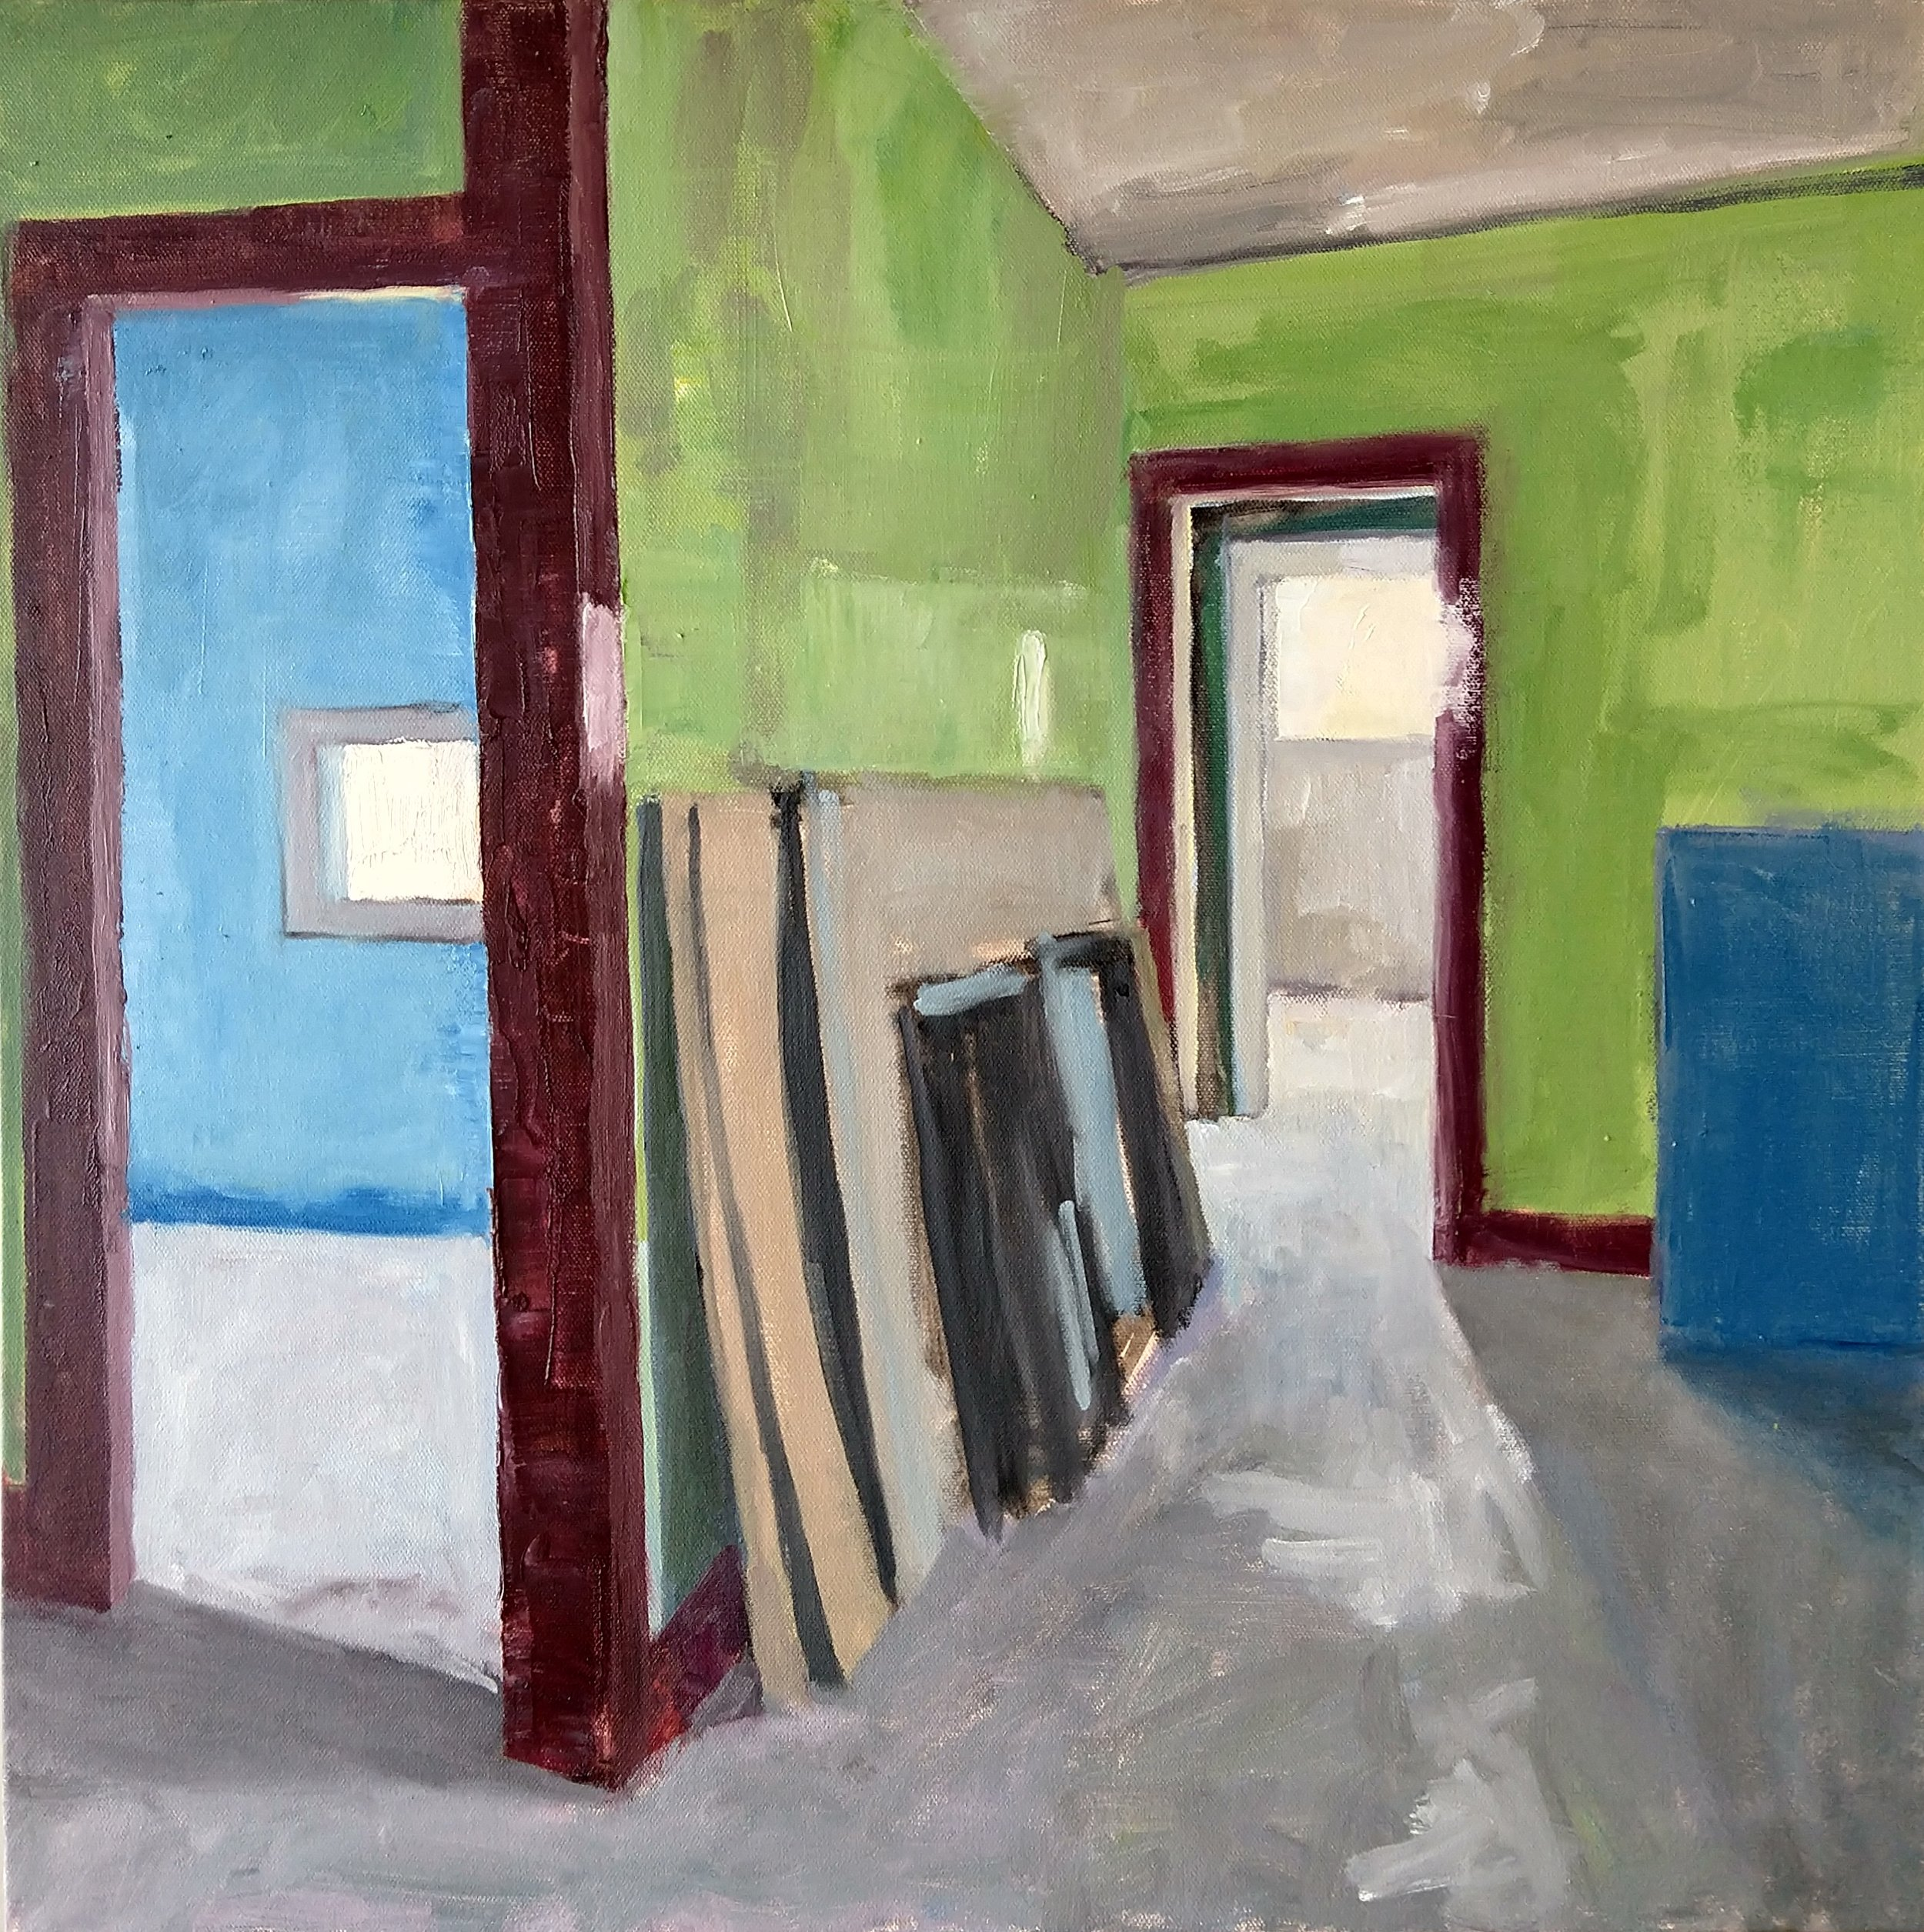 Two Rooms, Blue and Green